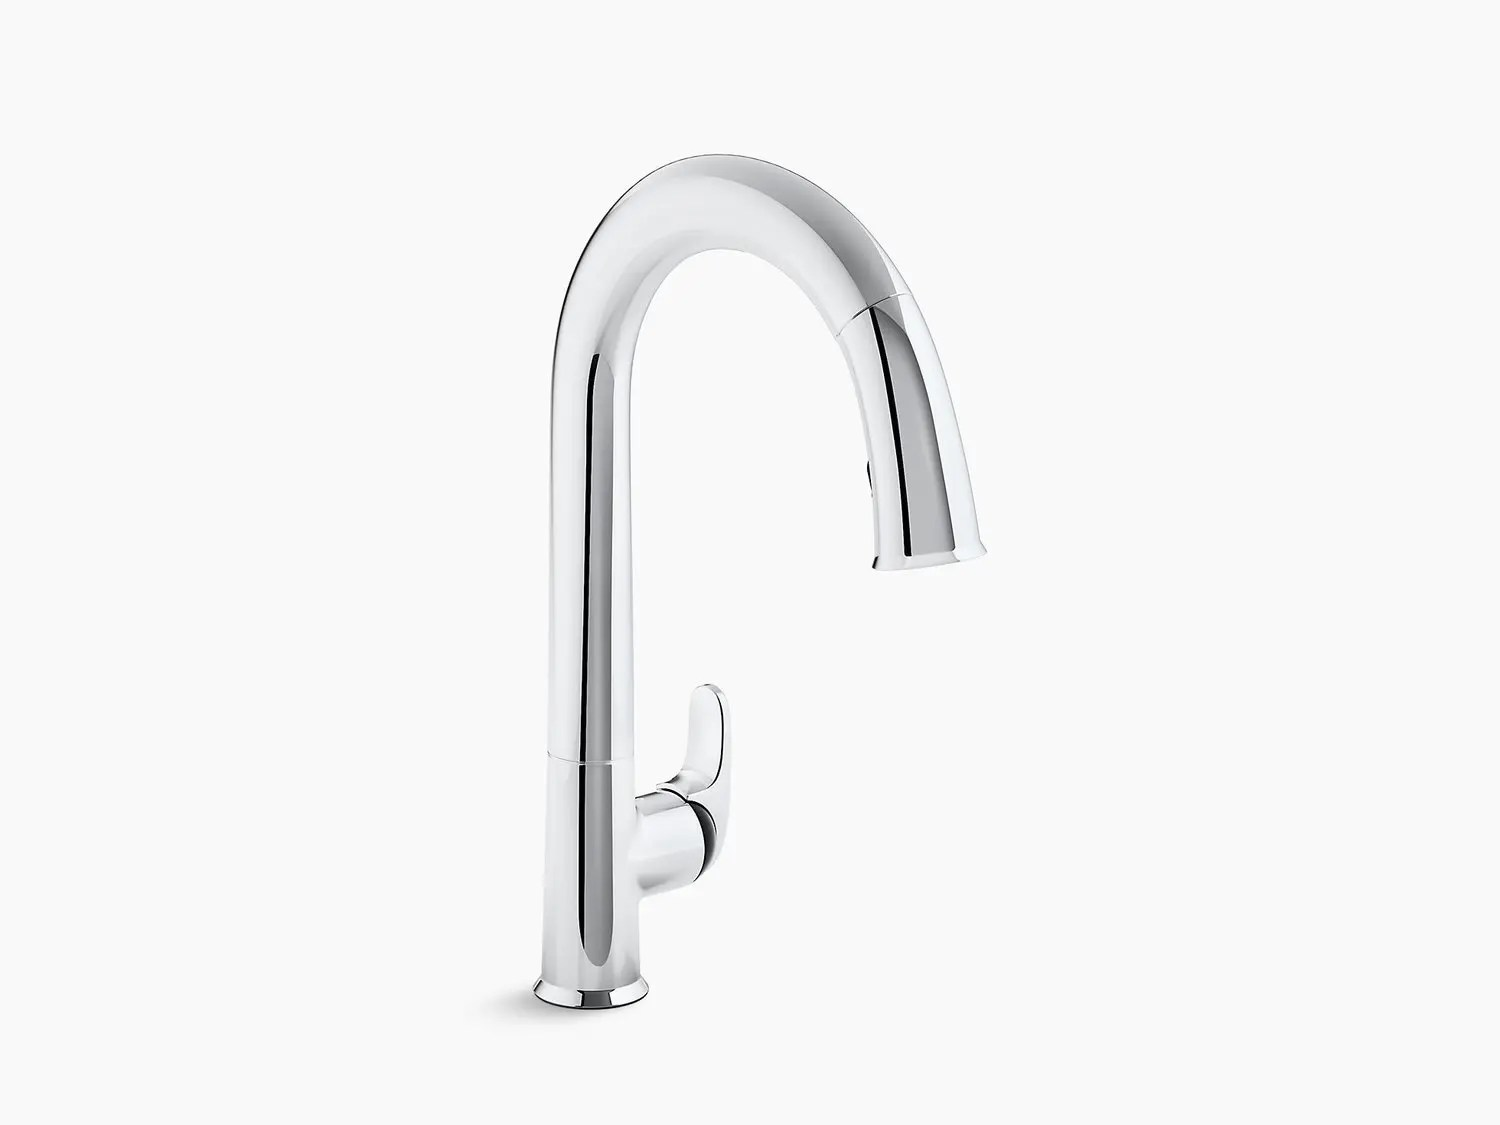 polished chrome touchless kitchen faucet with black accents 15 1 2 pull down spout docknetik magnetic docking system and a 2 function sprayhead